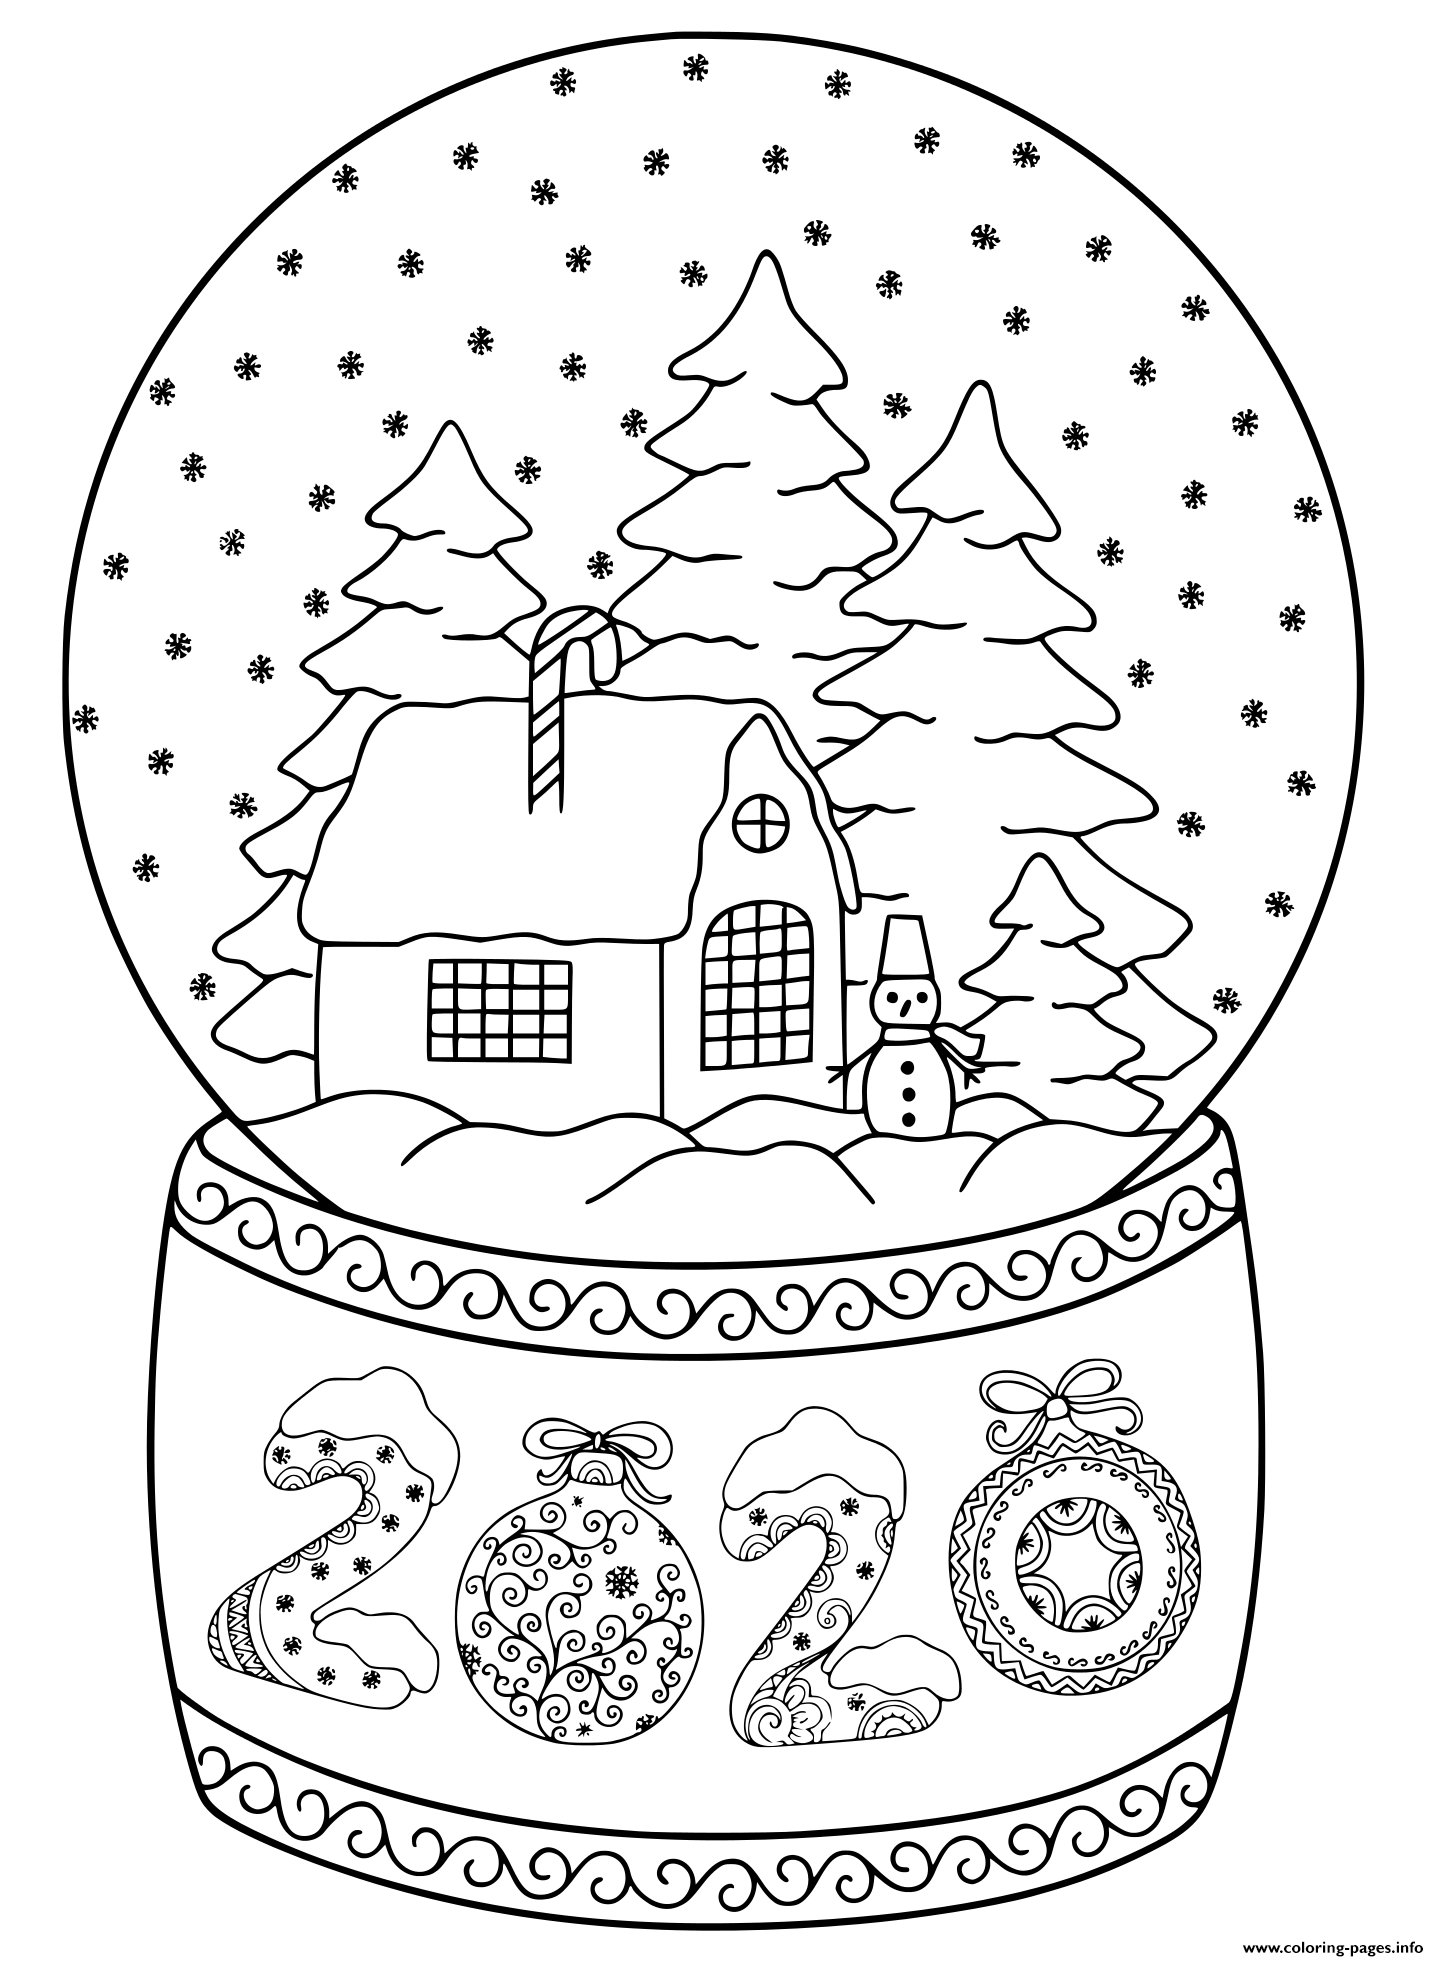 2020 Happy New Year Snow Globe House Coloring Pages Printable